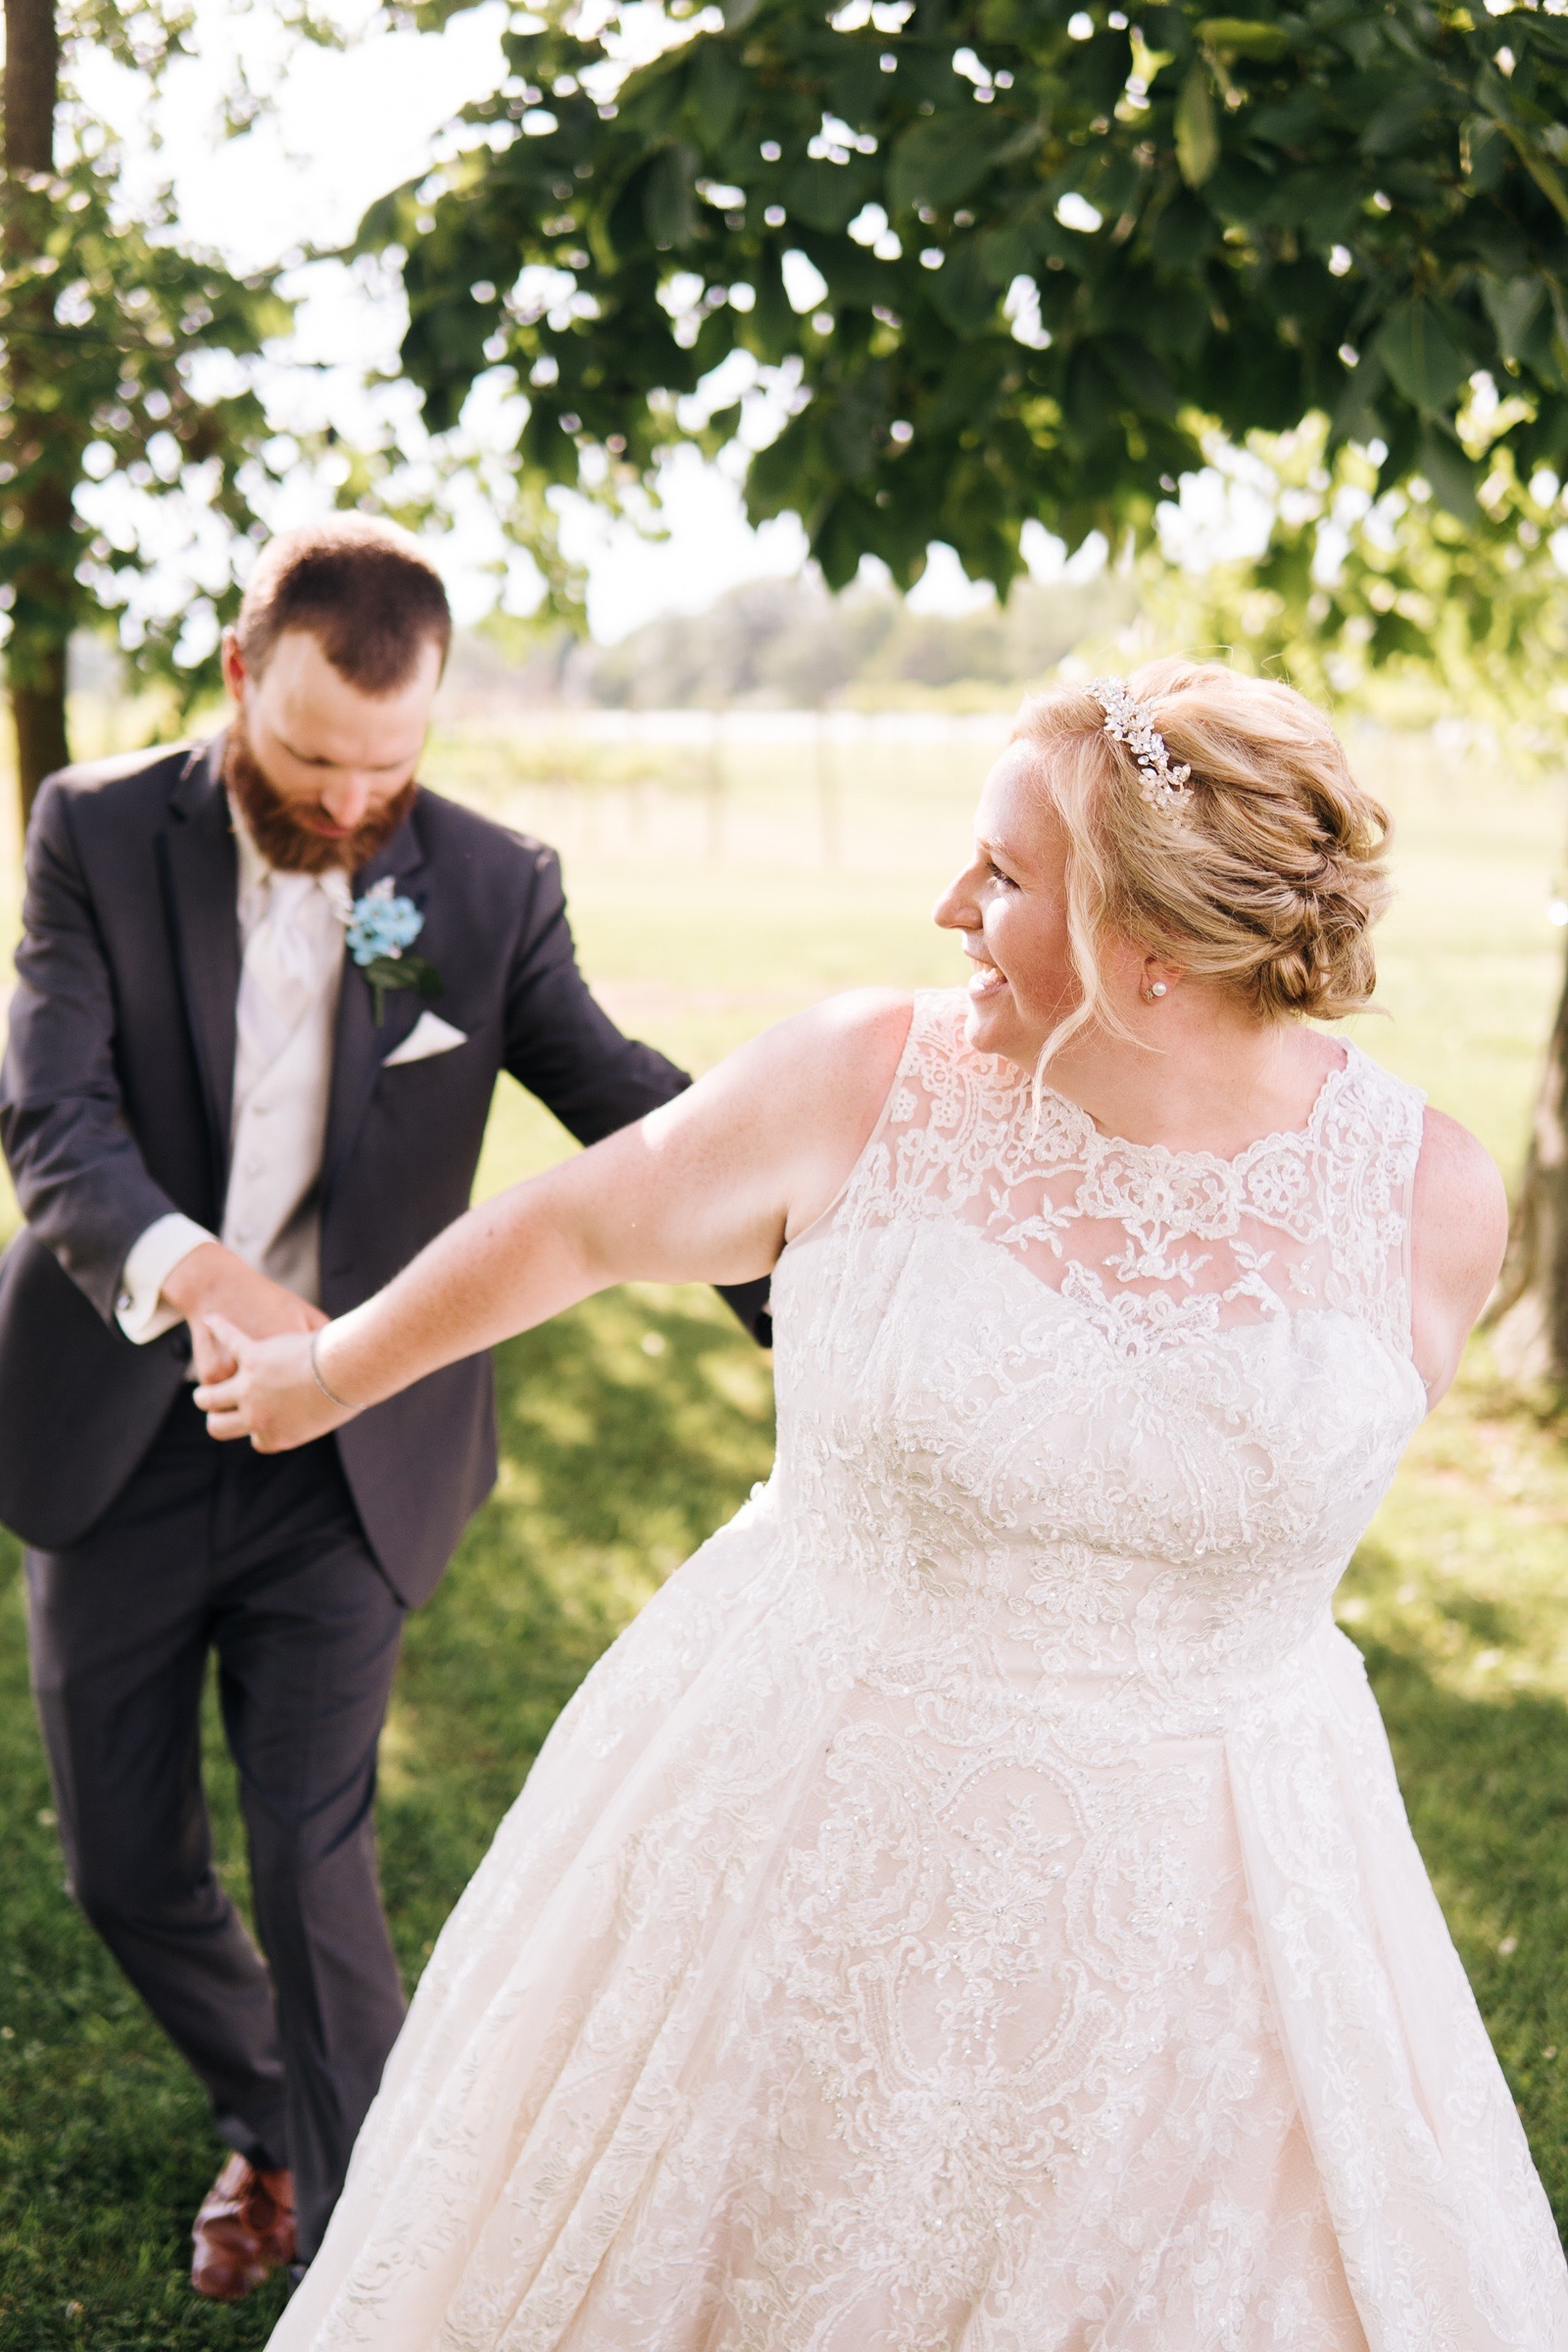 Midwest Chicago Vineyard Wedding by Jonathan Hannah Photography-24.jpg